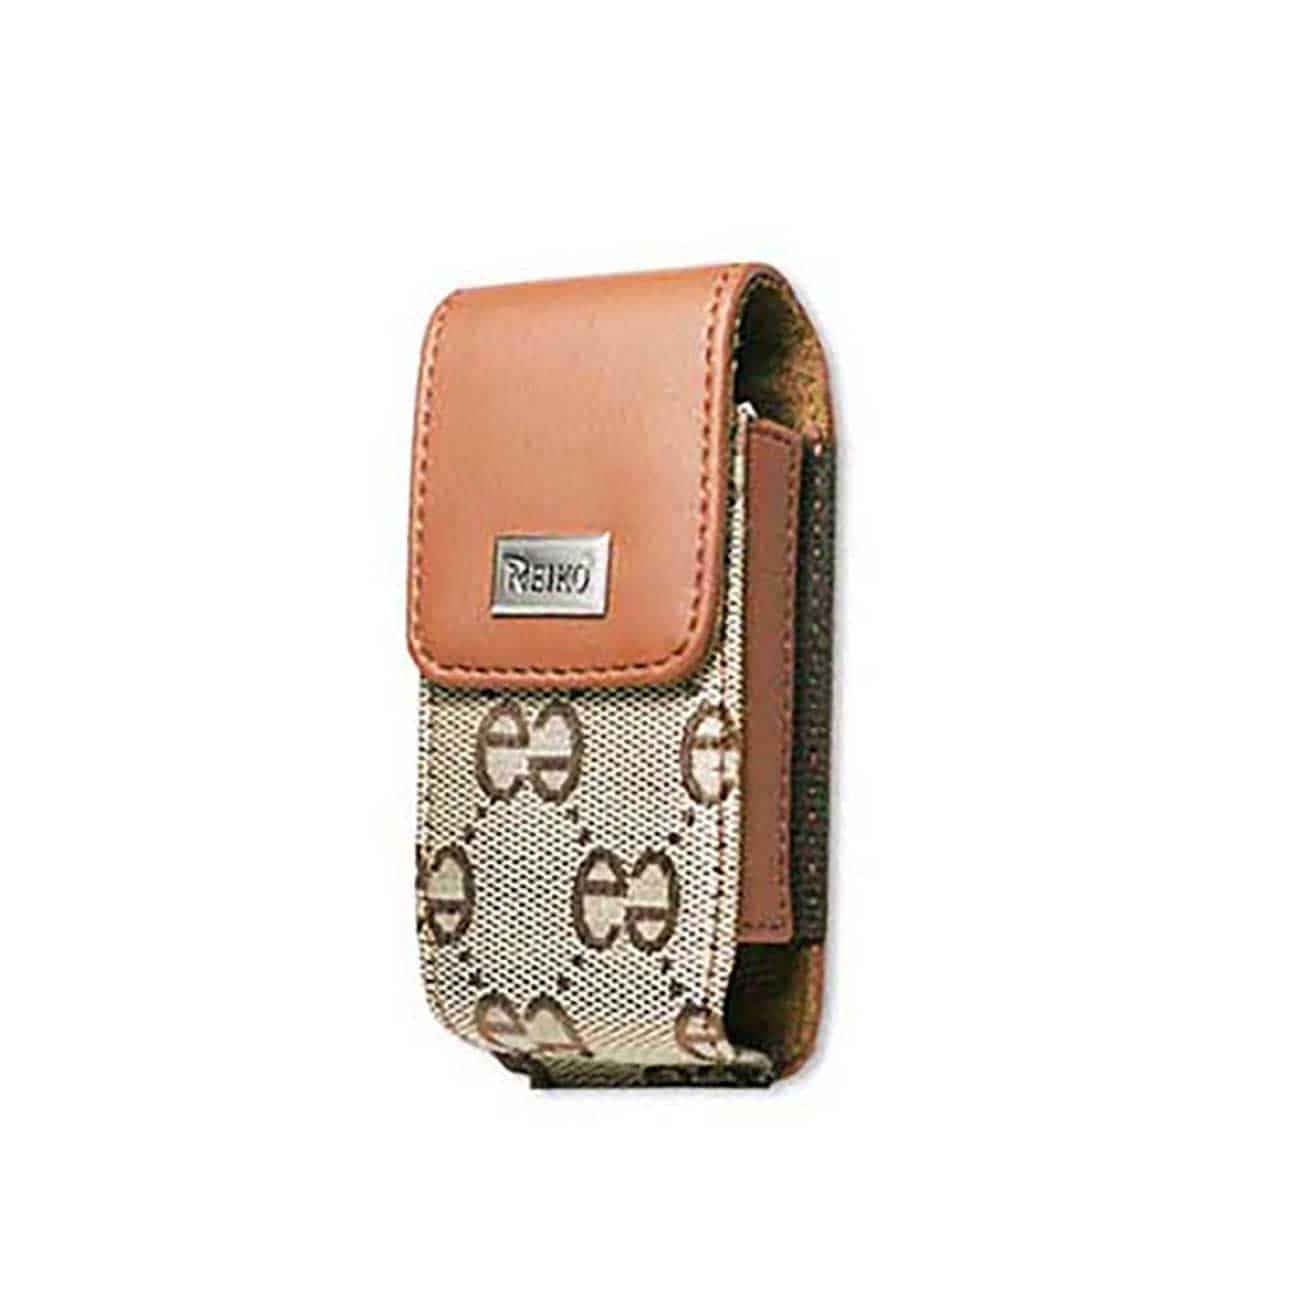 VERTICAL POUCH VP385 BLACKBERRY 8100 / MOTOROLA K1M BROWN 4.5X2.3X0.6 INCHES